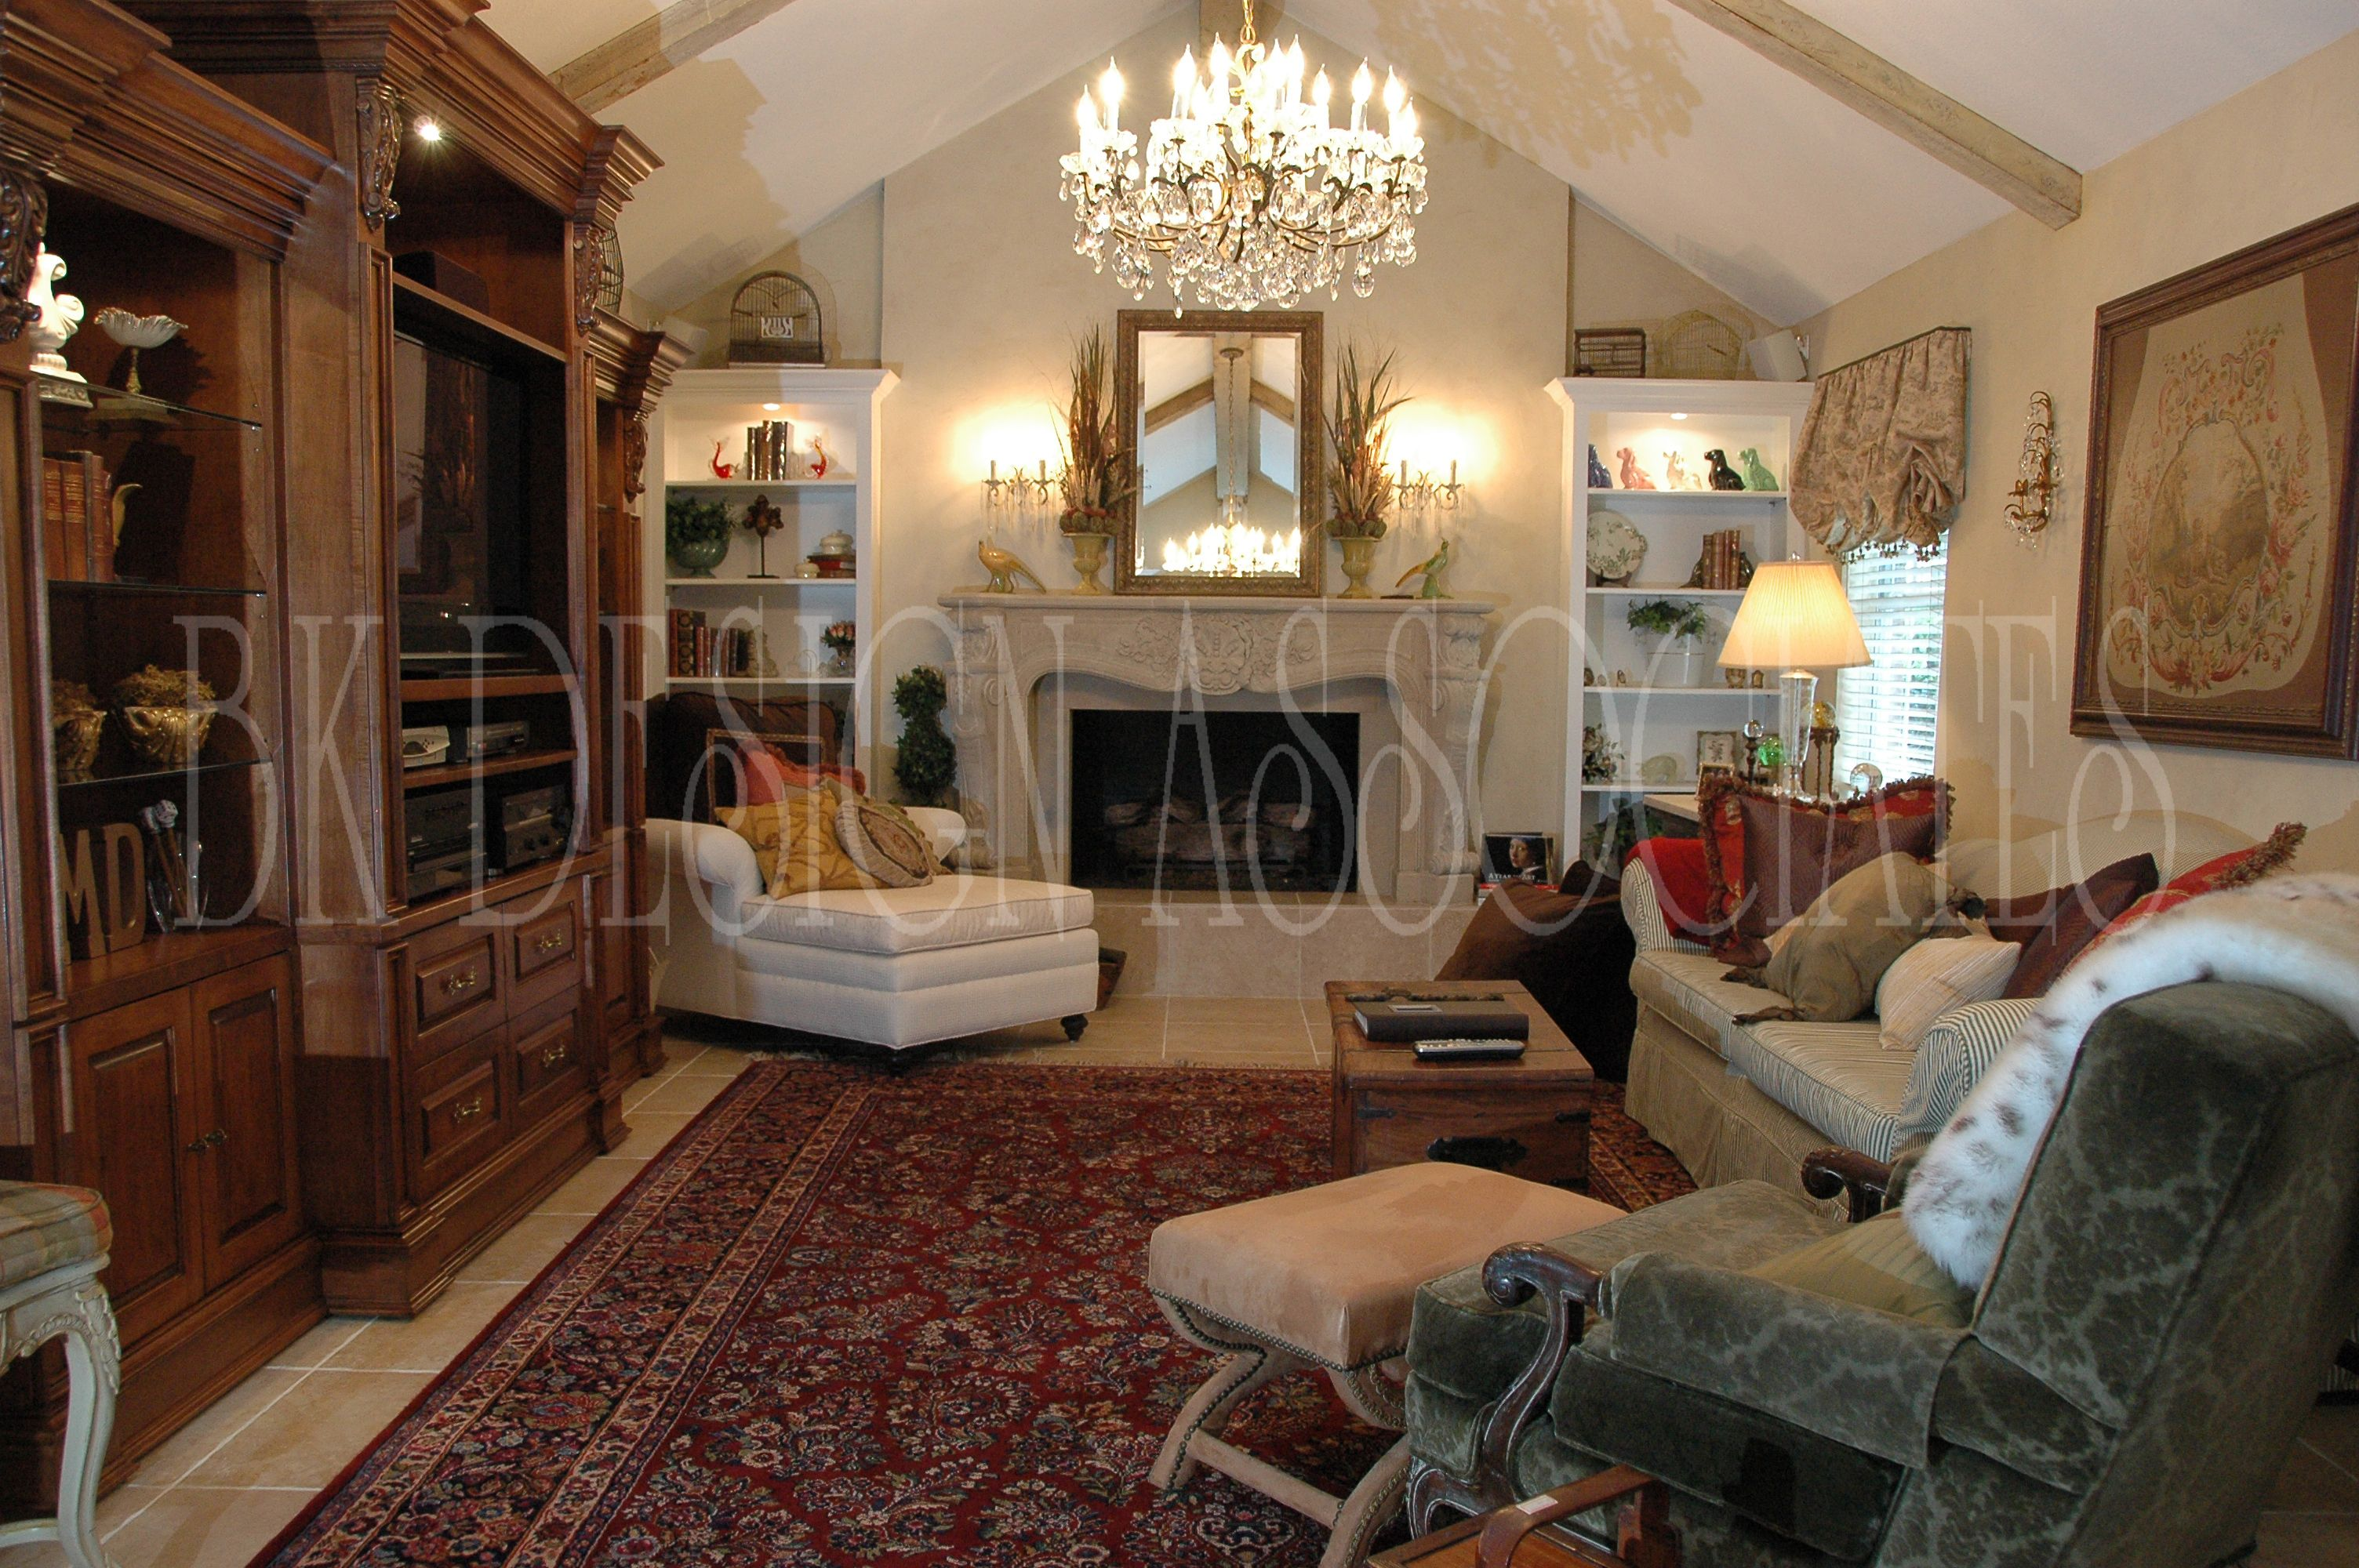 country interior design french country den houston interior rh pinterest com interior design den haag interior design den haag